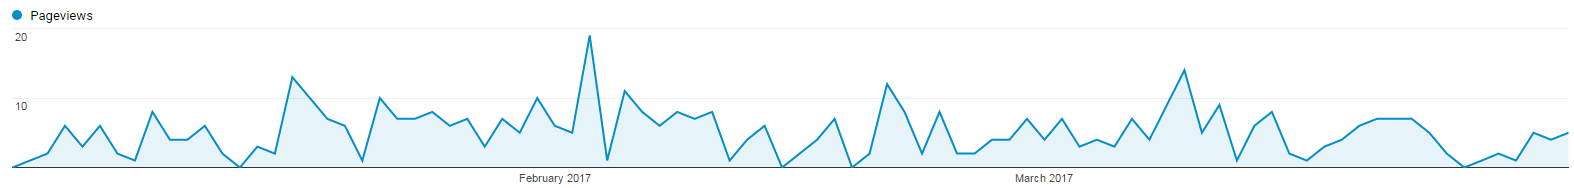 Blog Post Page Views Graph